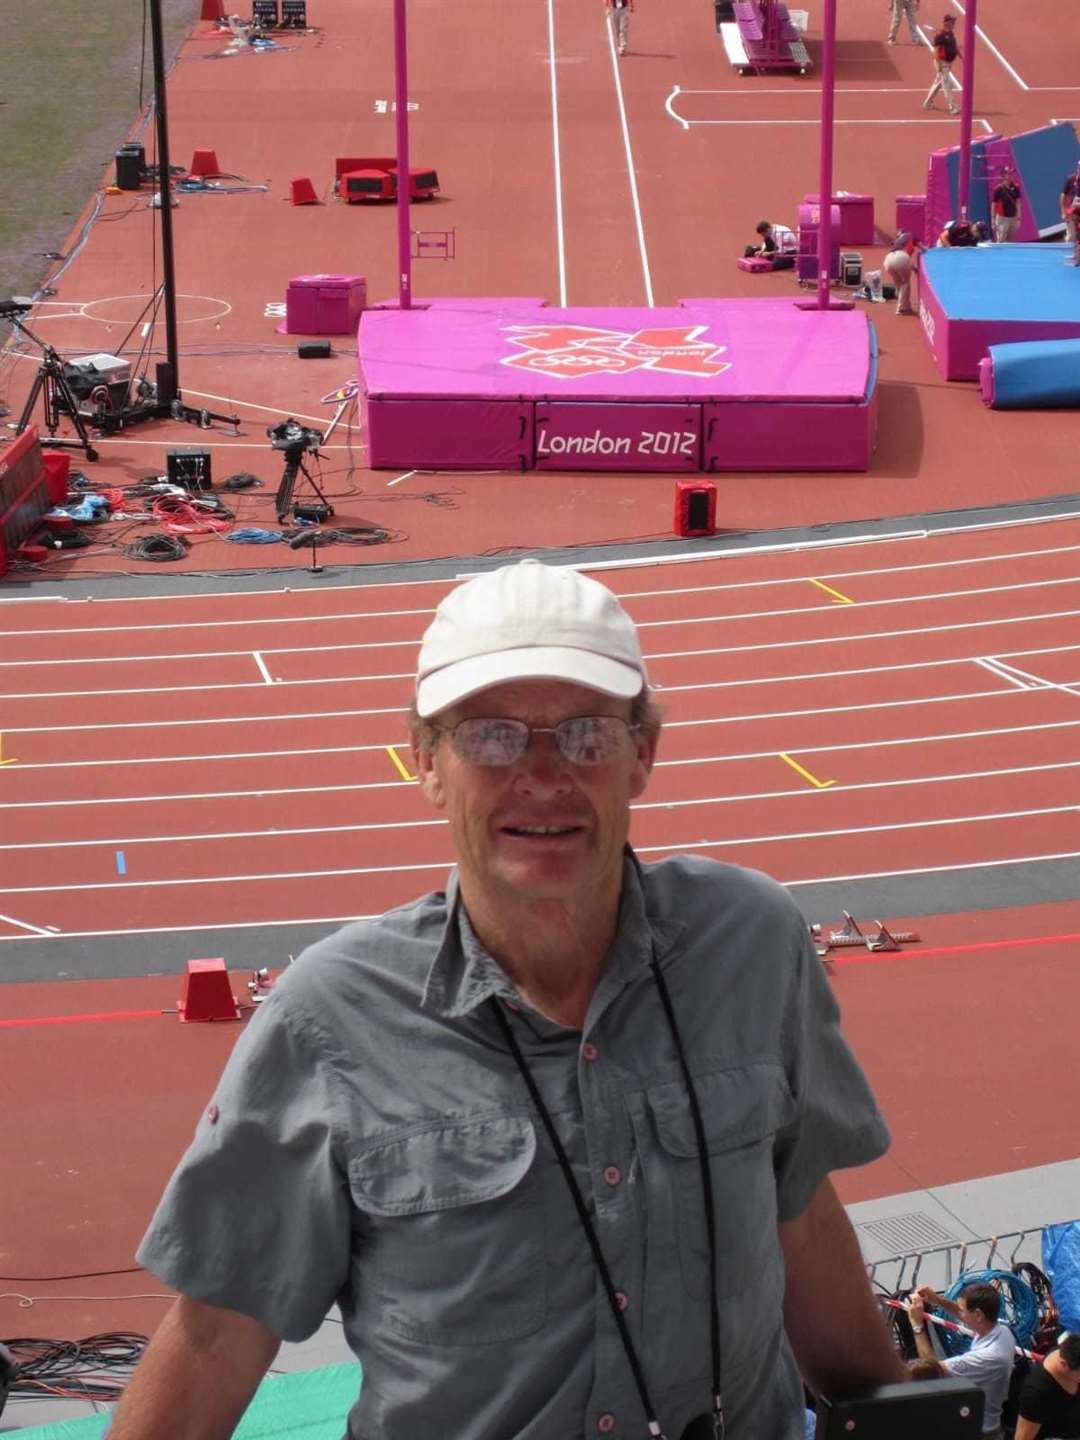 Roy Thickpenny pictured at the LOndon 2012 Olympics (42711139)